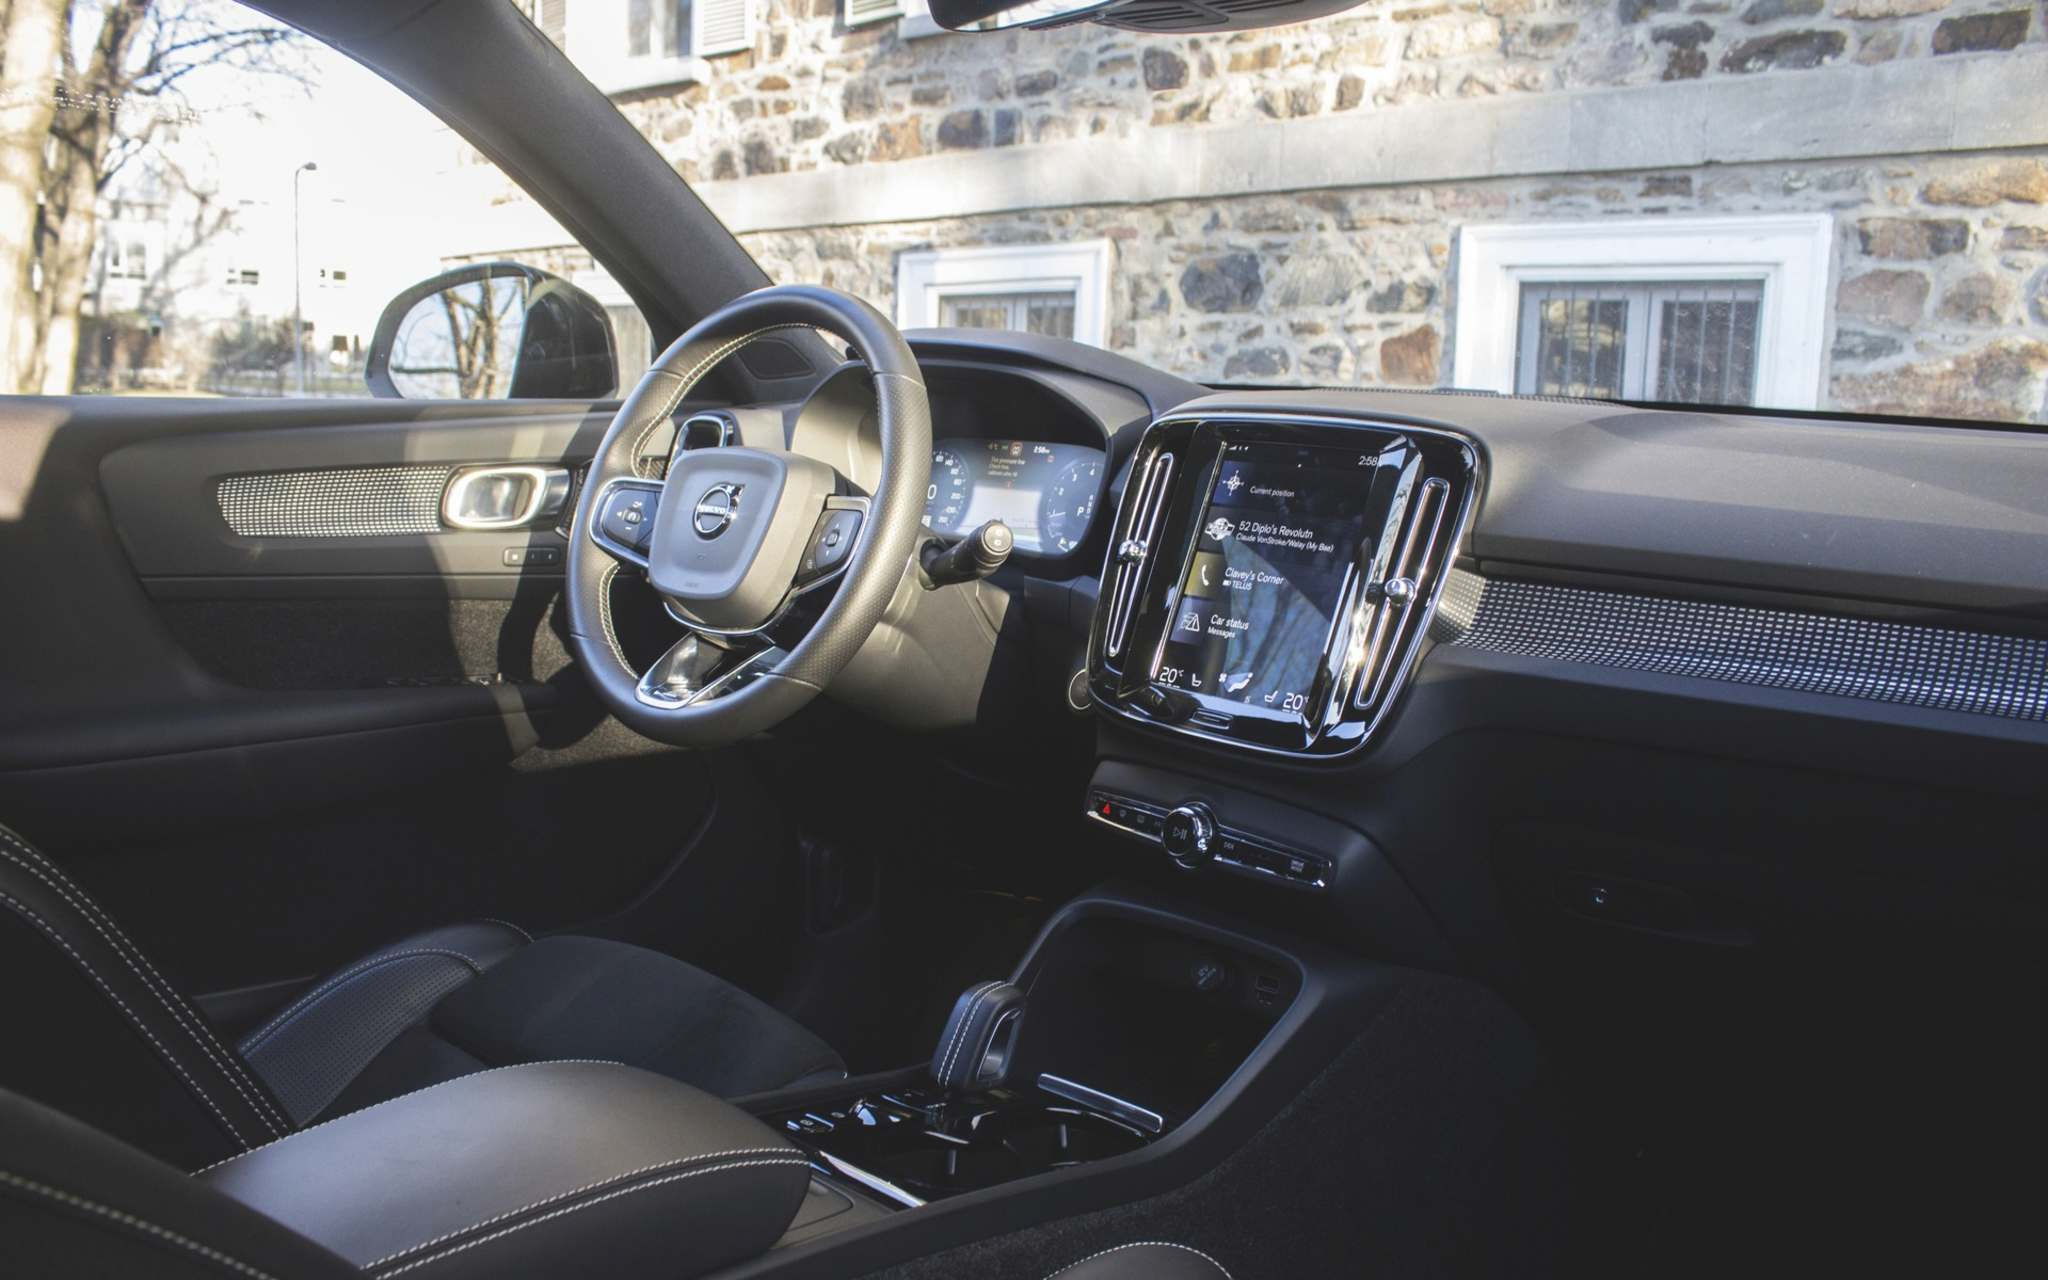 Volvo doesn't disappoint with its luxurious interiors. The XC40 features an infotainment system, however it can be slow to run on cold days.